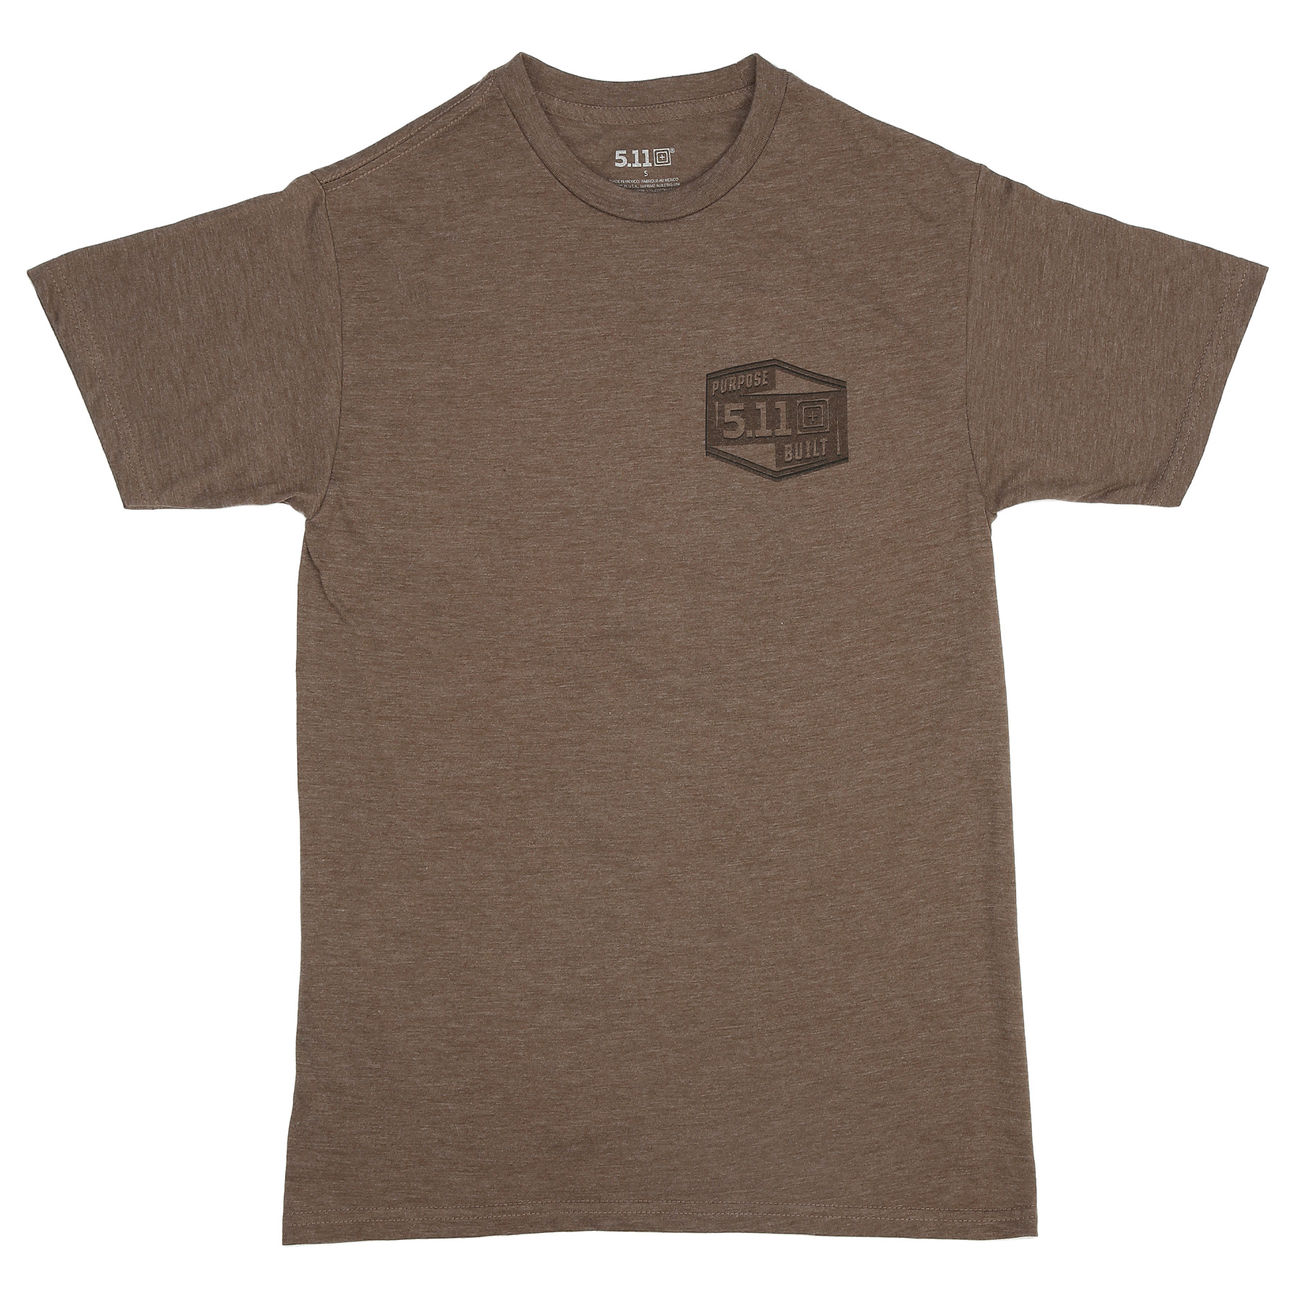 5.11 T-Shirt Purpose Built Tee brown heather 0